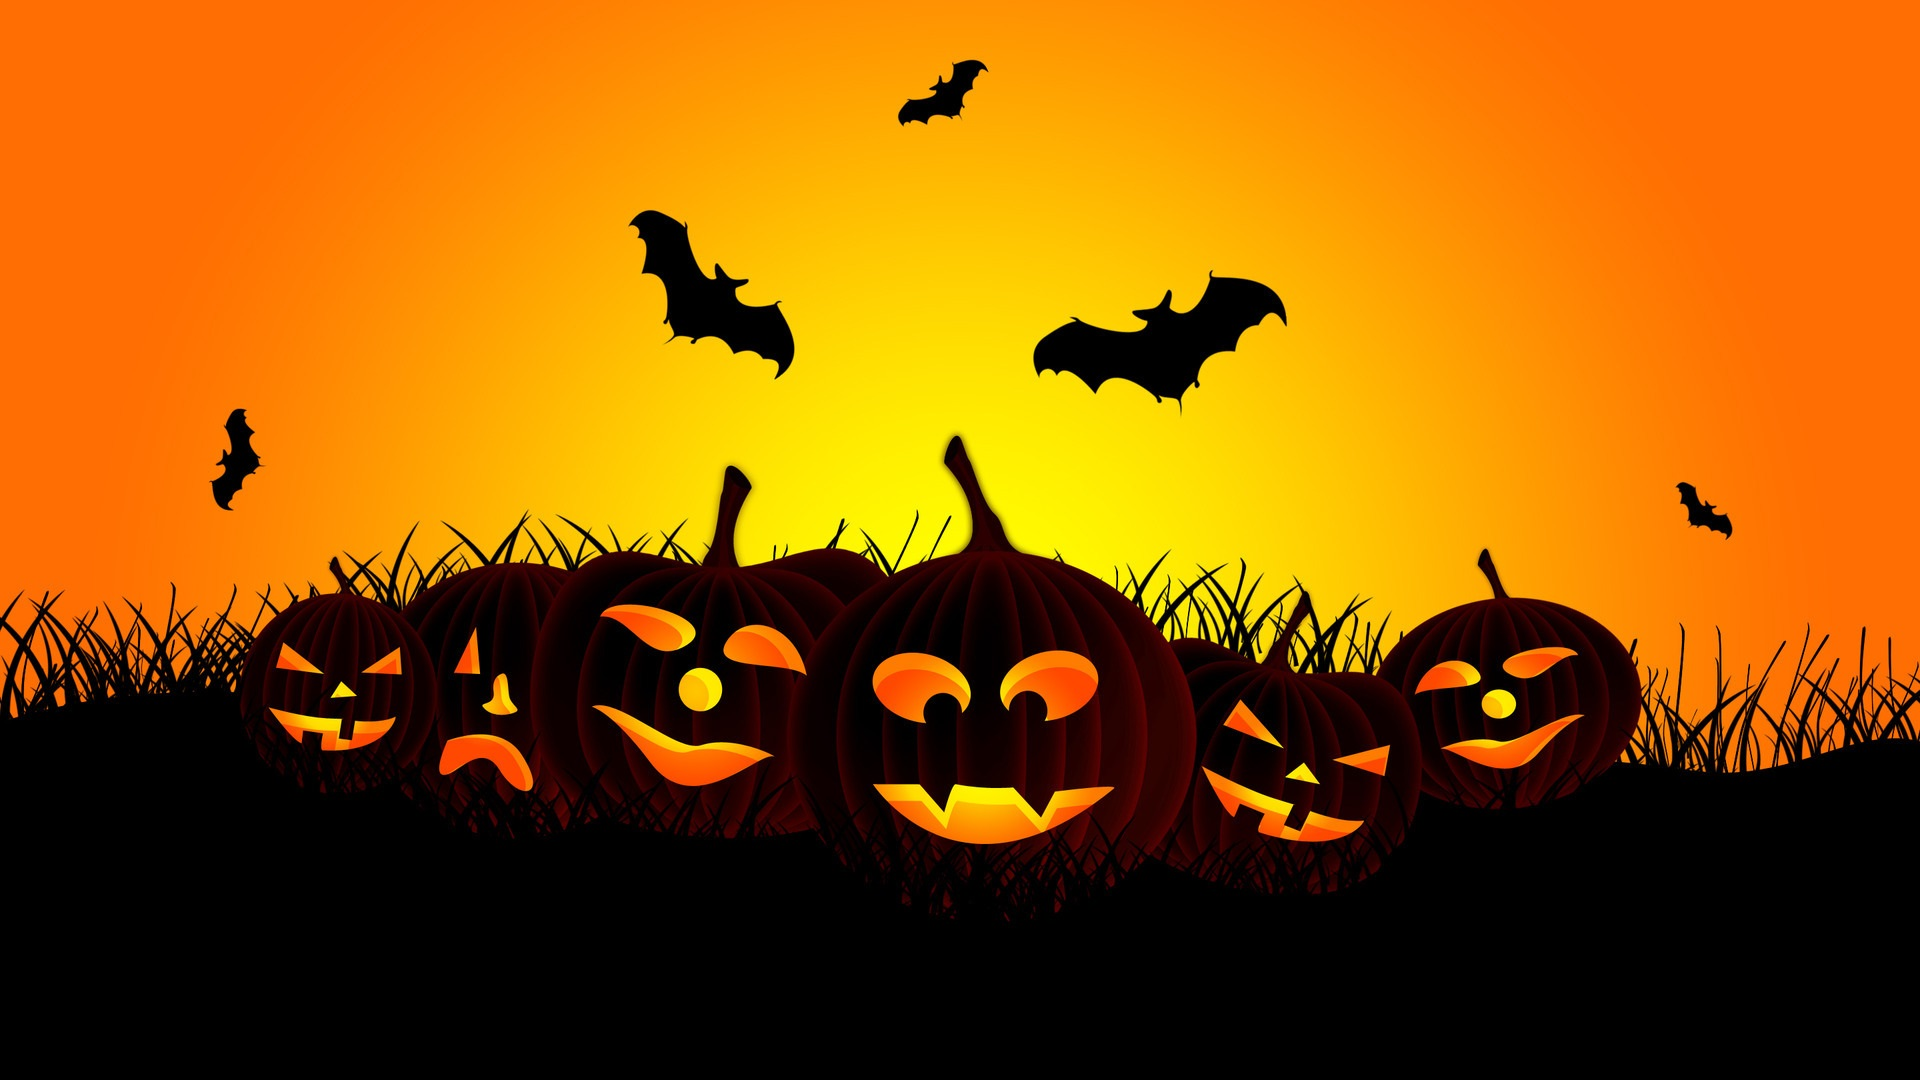 best ideas about Halloween Wallpaper Iphone on Pinterest 1920x1080